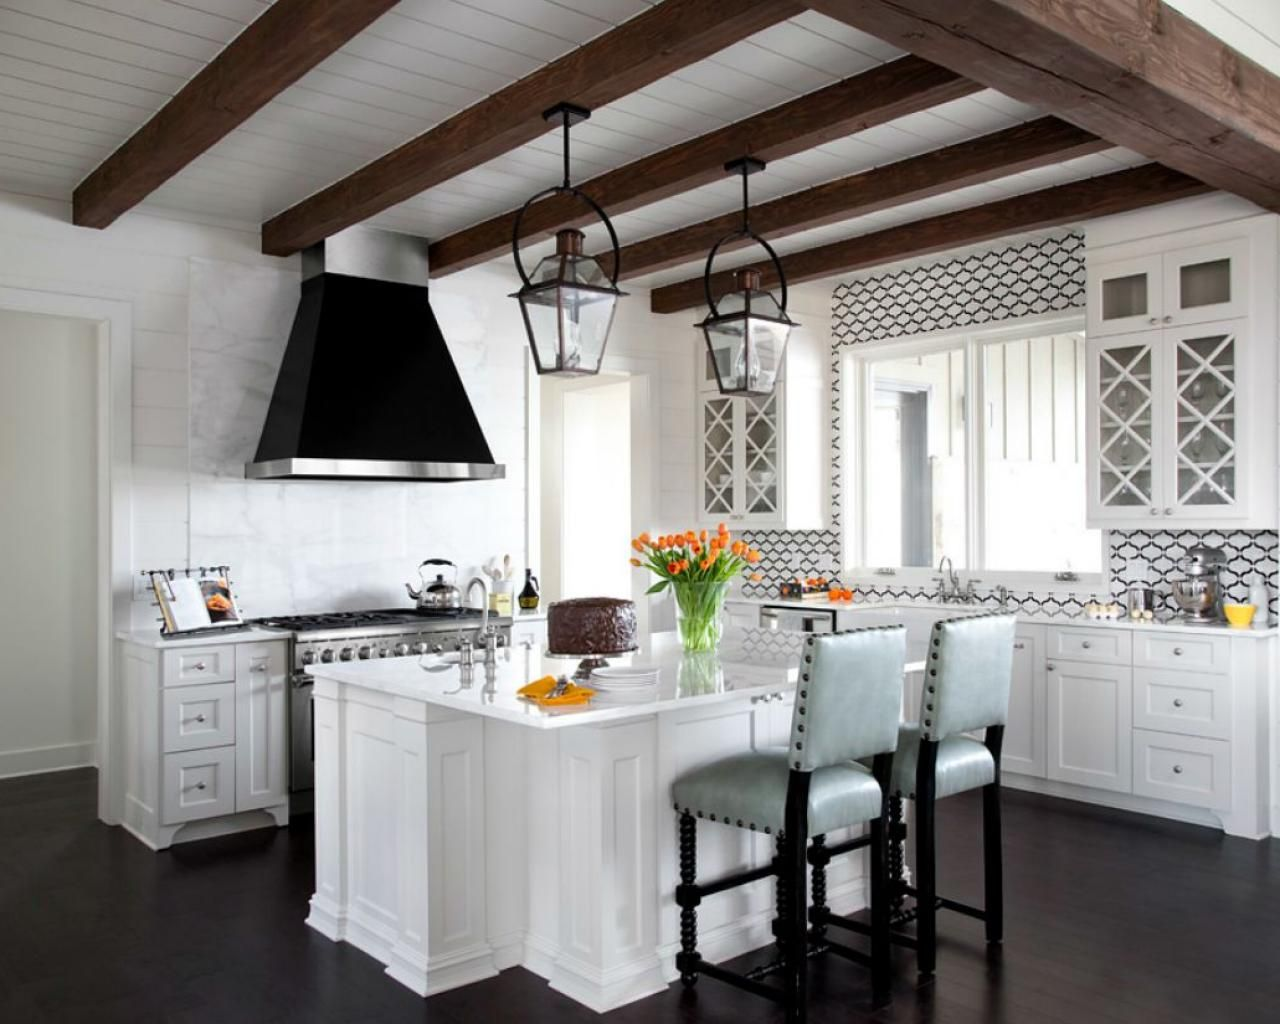 The kitchen is bright and fresh, with white cabinets and calacatta ...